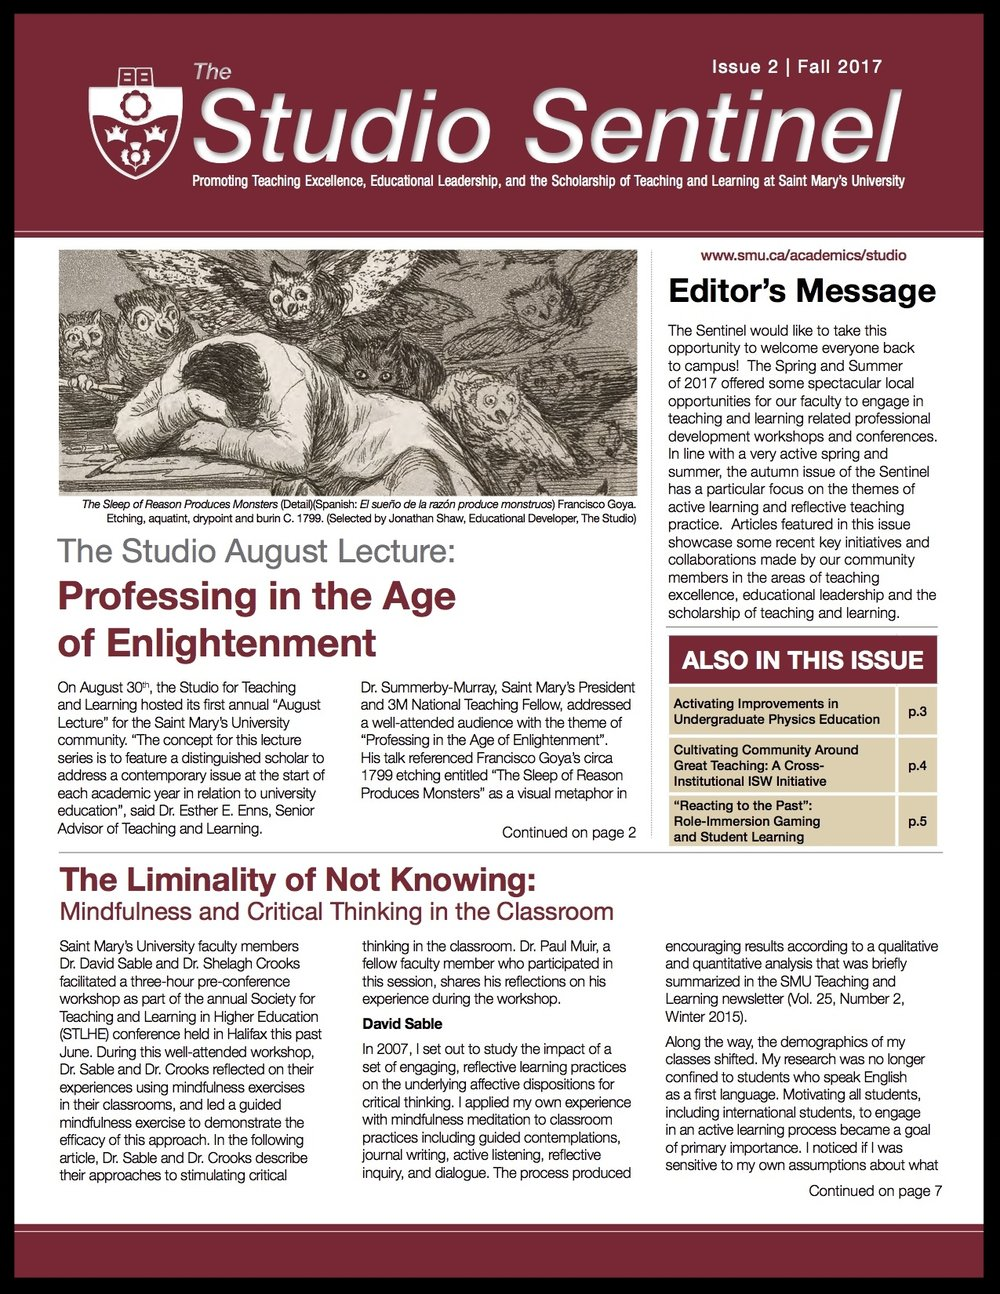 Issue 2: Fall 2017 - Professing in the Age of EnlightenmentMindfulness and Critical Thinking in the ClassroomActivating Improvements in Undergraduate Physics EducationCultivating Community Around Great TeachingRole-Immersion Gaming and Student LearningSMUSA Teaching Excellence Award Recipients